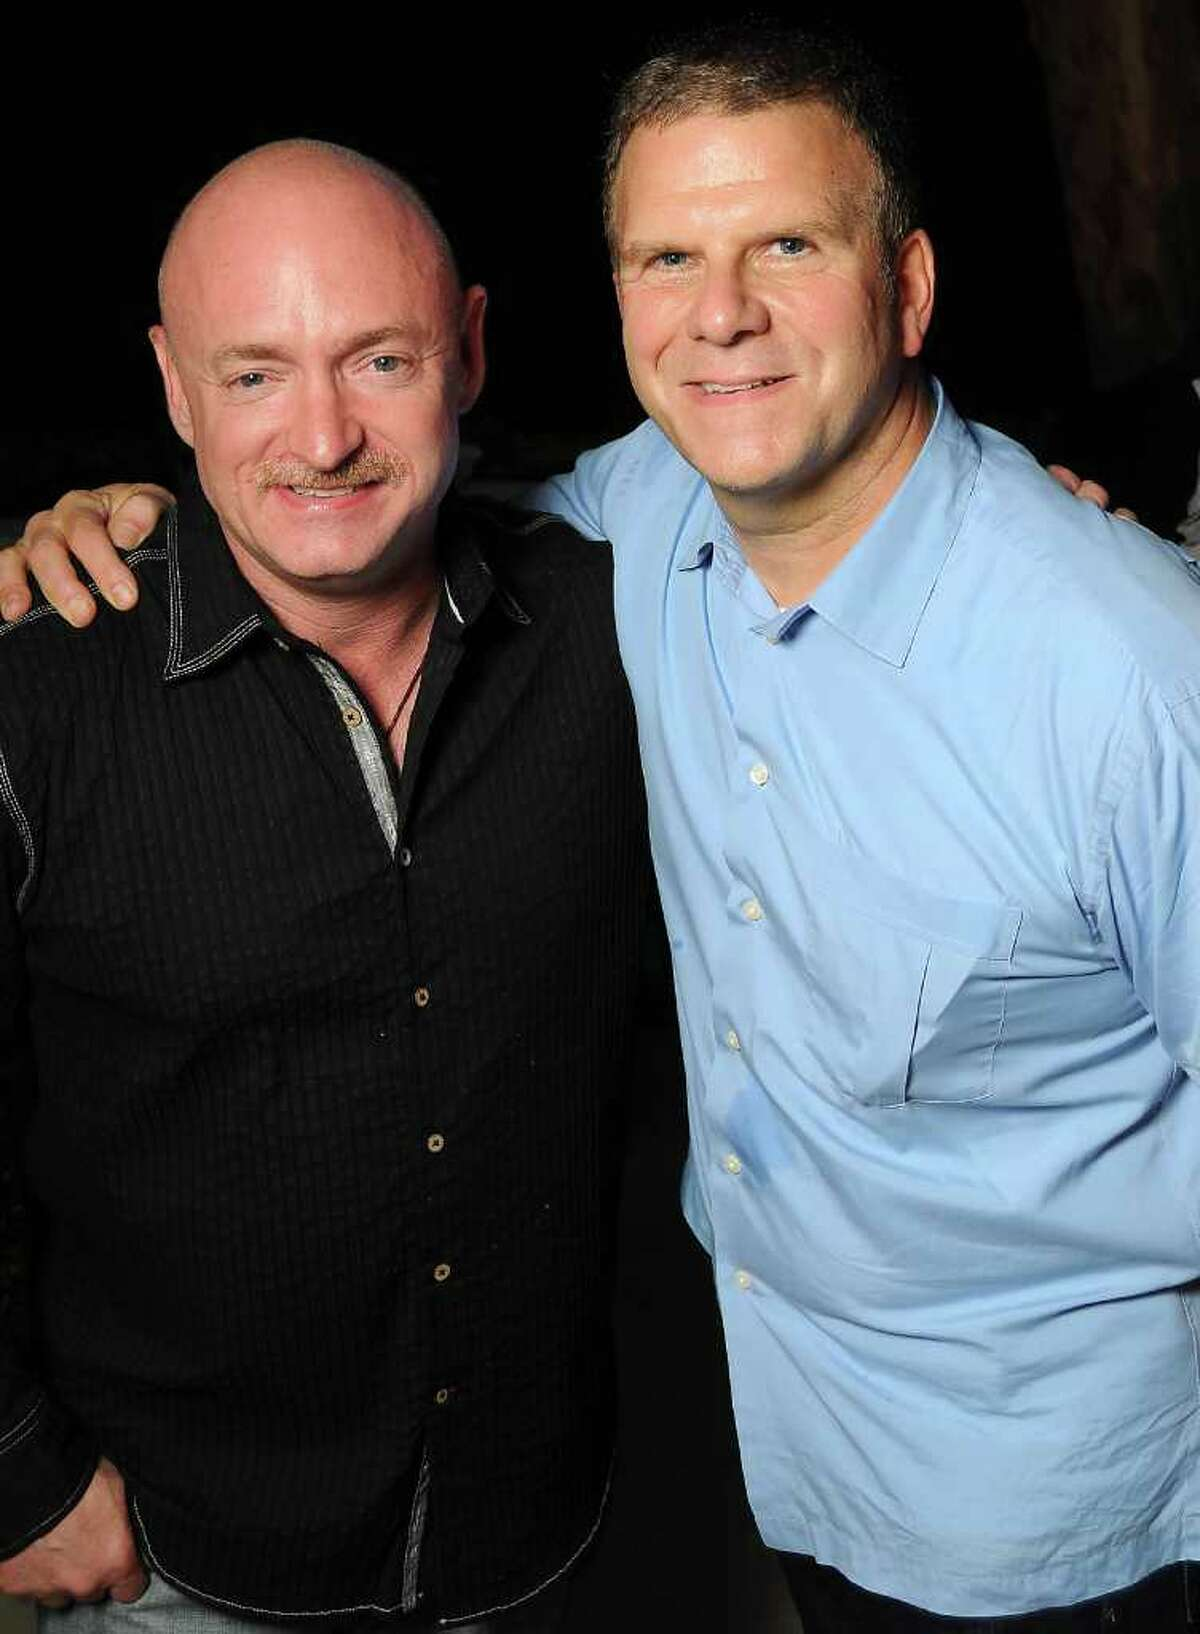 Astronaut Mark Kelly and Tilman Fertitta at the Gathering of Champions benefitting Houston Children's Charity at Fertitta's home Wednesday April 13,2011.(Dave Rossman/For the Chronicle)